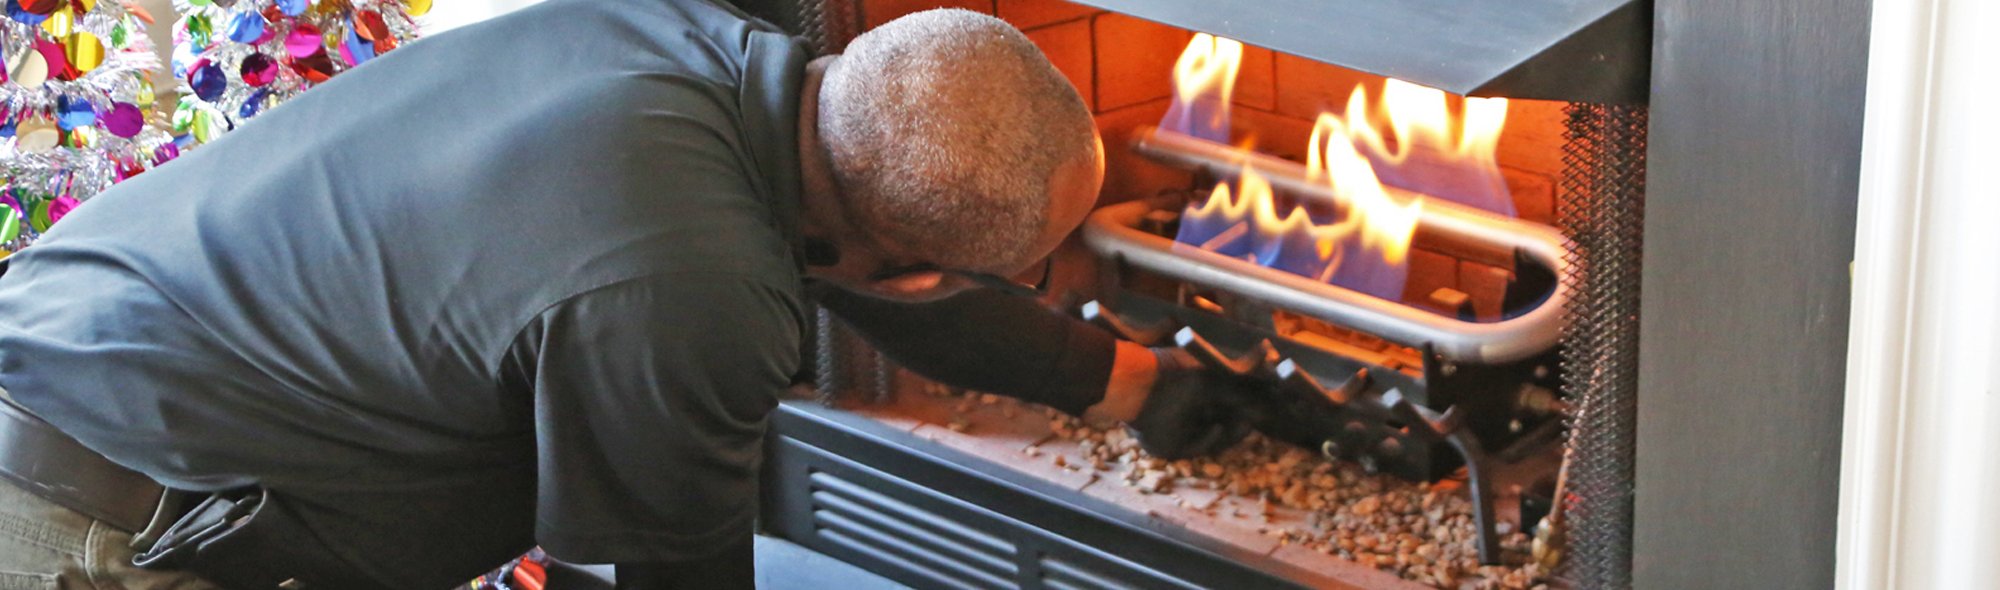 fireplace repair and fireplace install in washington d.c